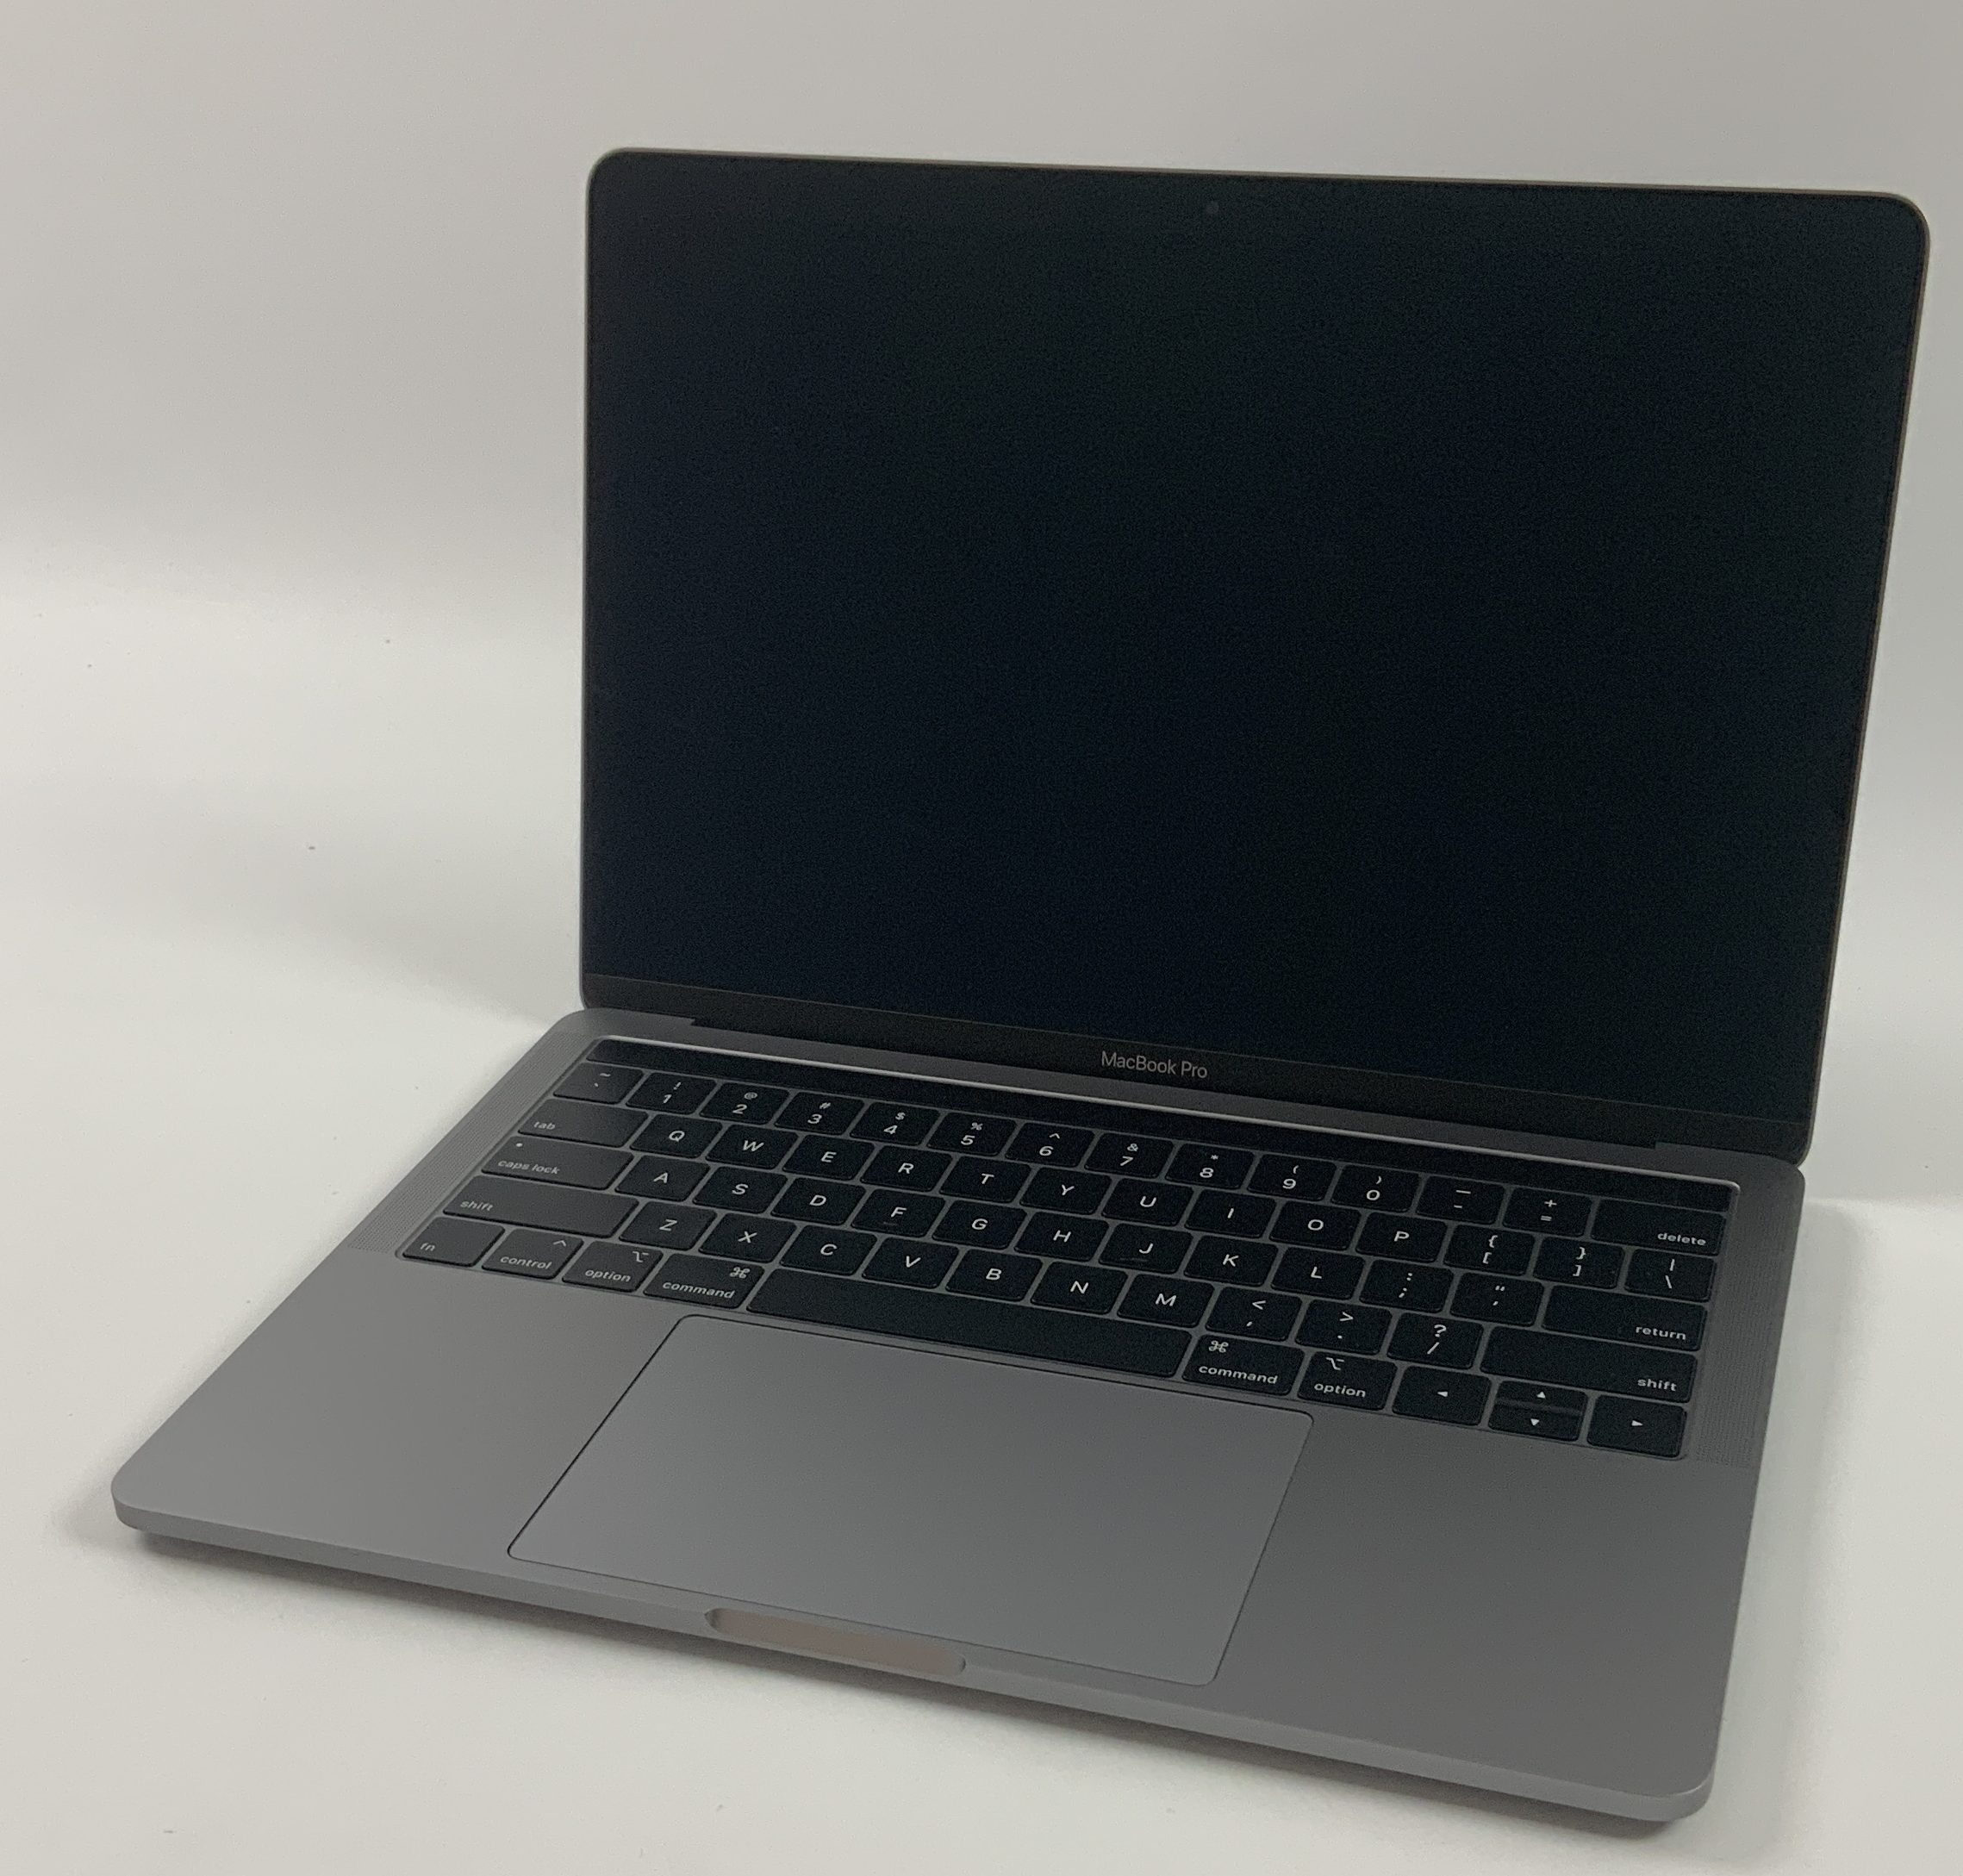 "MacBook Pro 13"" 4TBT Mid 2019 (Intel Quad-Core i5 2.4 GHz 16 GB RAM 256 GB SSD), Space Gray, Intel Quad-Core i5 2.4 GHz, 16 GB RAM, 256 GB SSD, imagen 1"